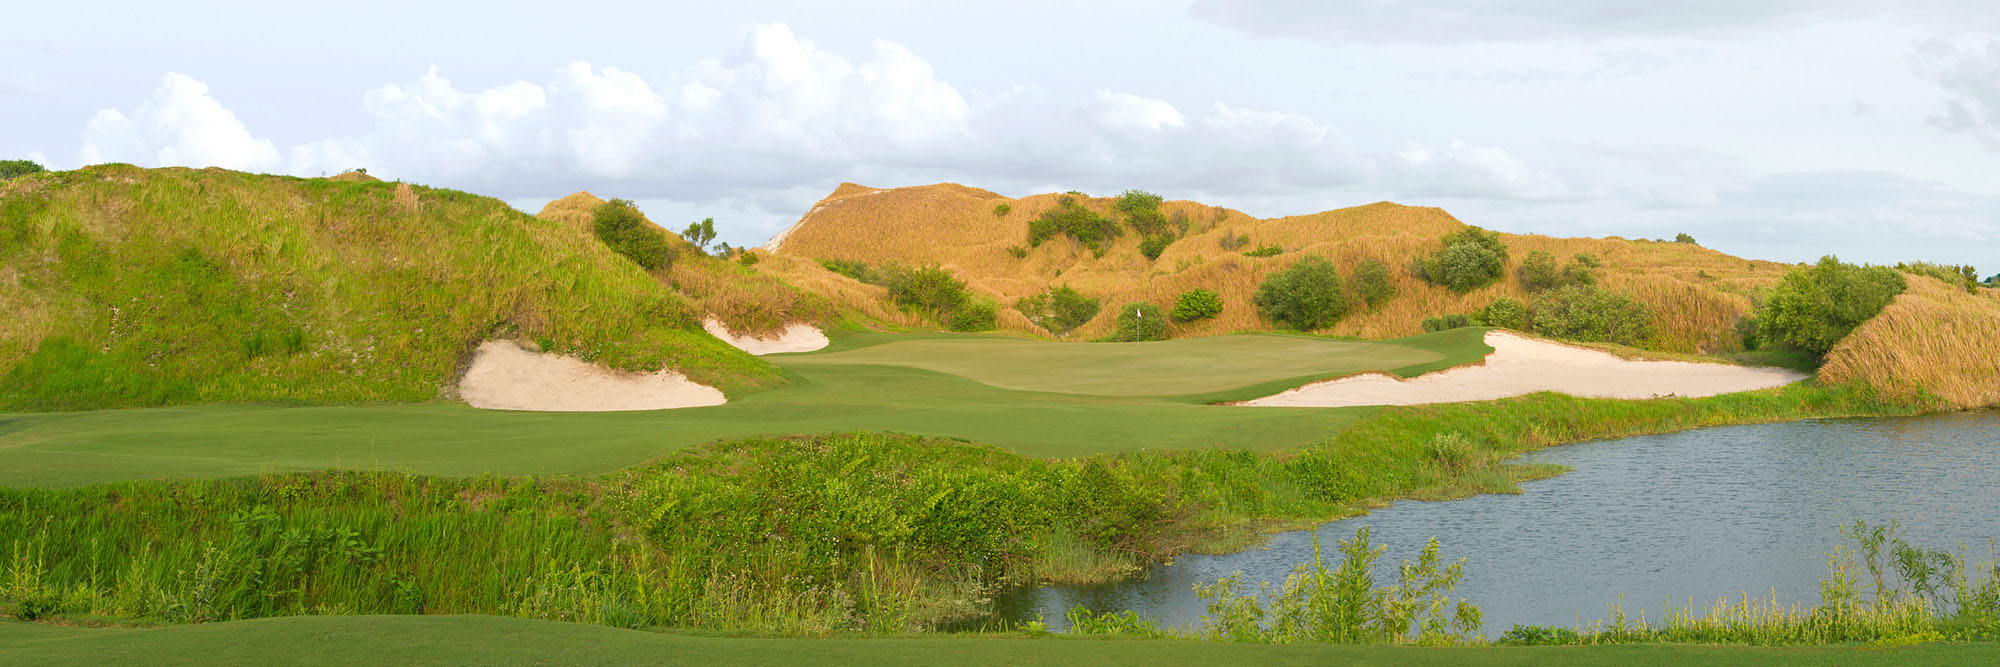 Golf Course Image - Streamsong Red No. 6